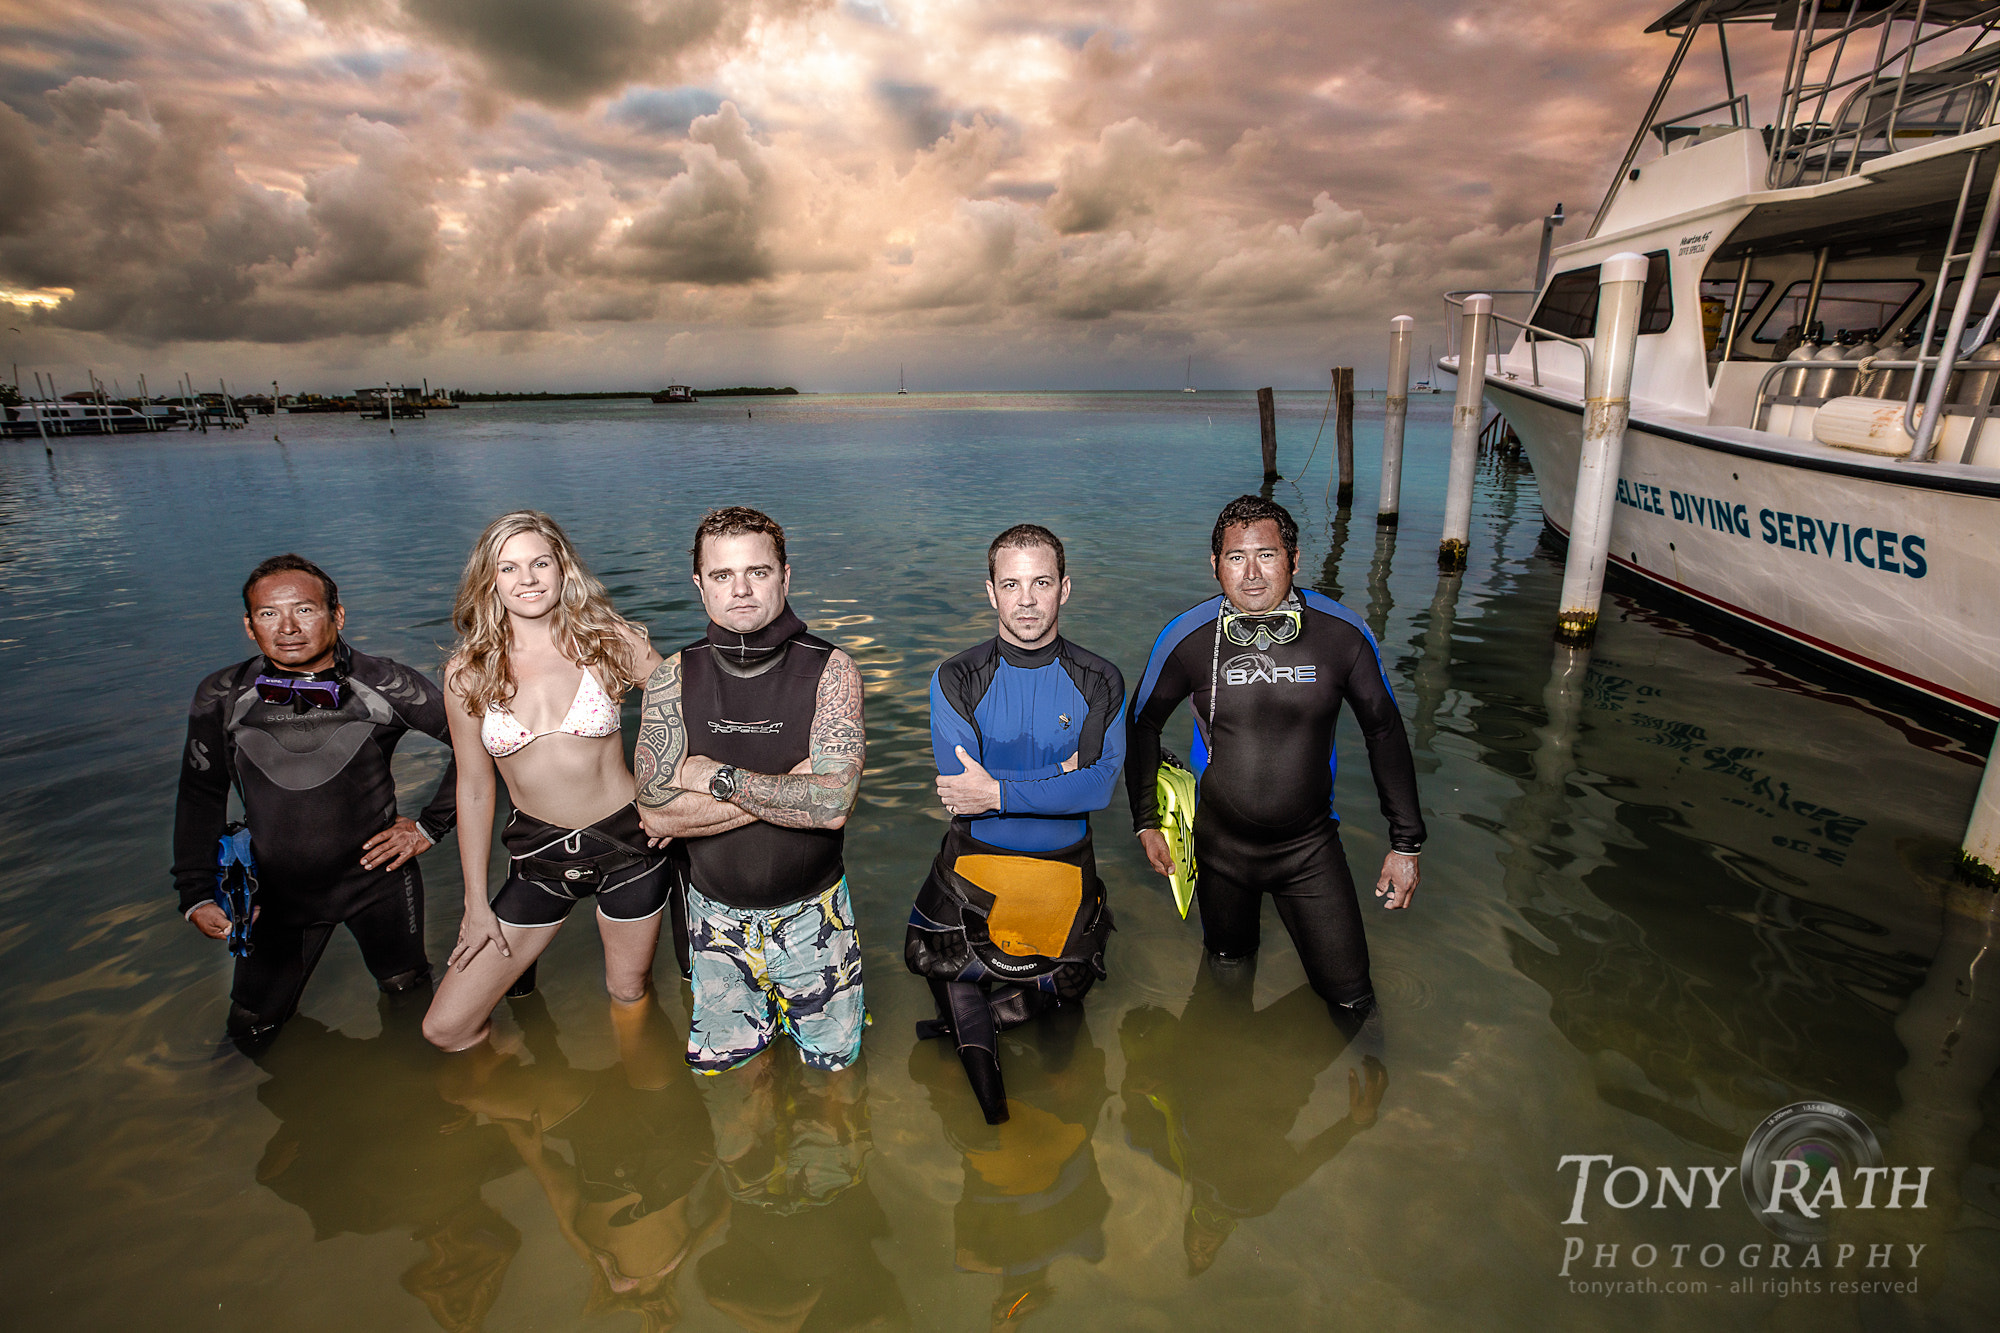 Photograph Belize Diving Services Owner Photo by Tony Rath on 500px